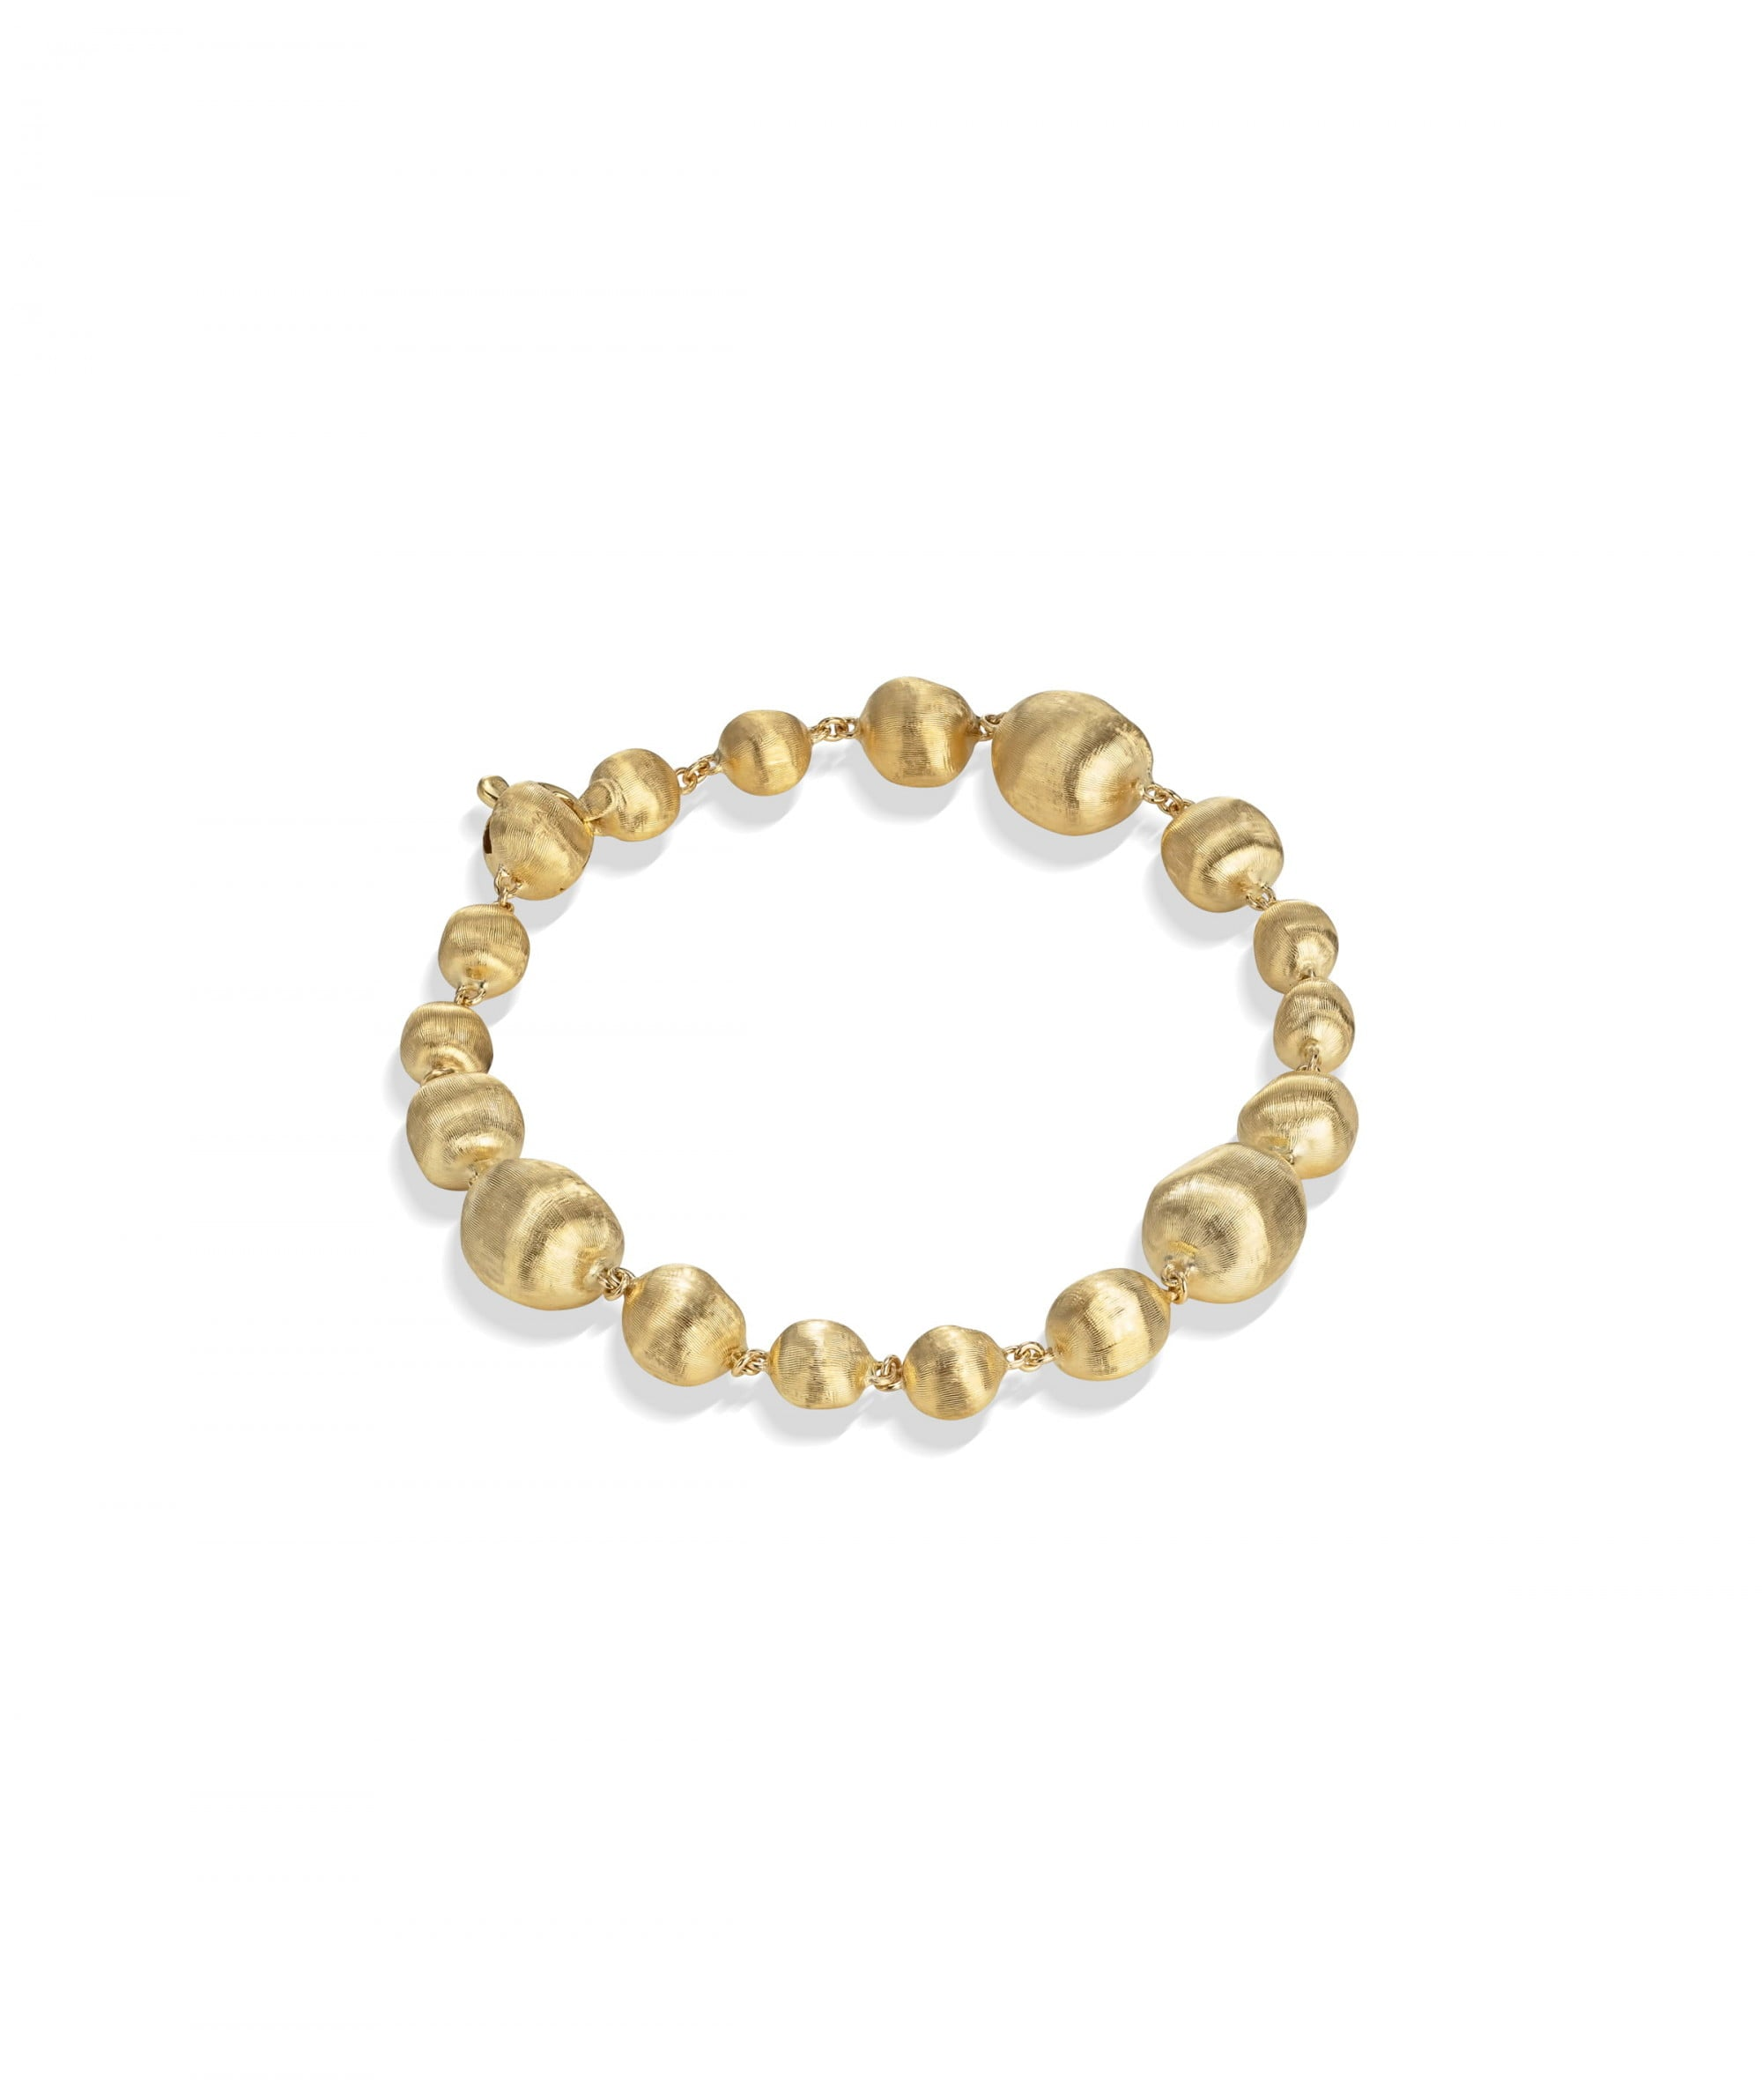 Africa Bracelet in 18k Yellow Gold with Irregular Spheres - Orsini Jewellers NZ